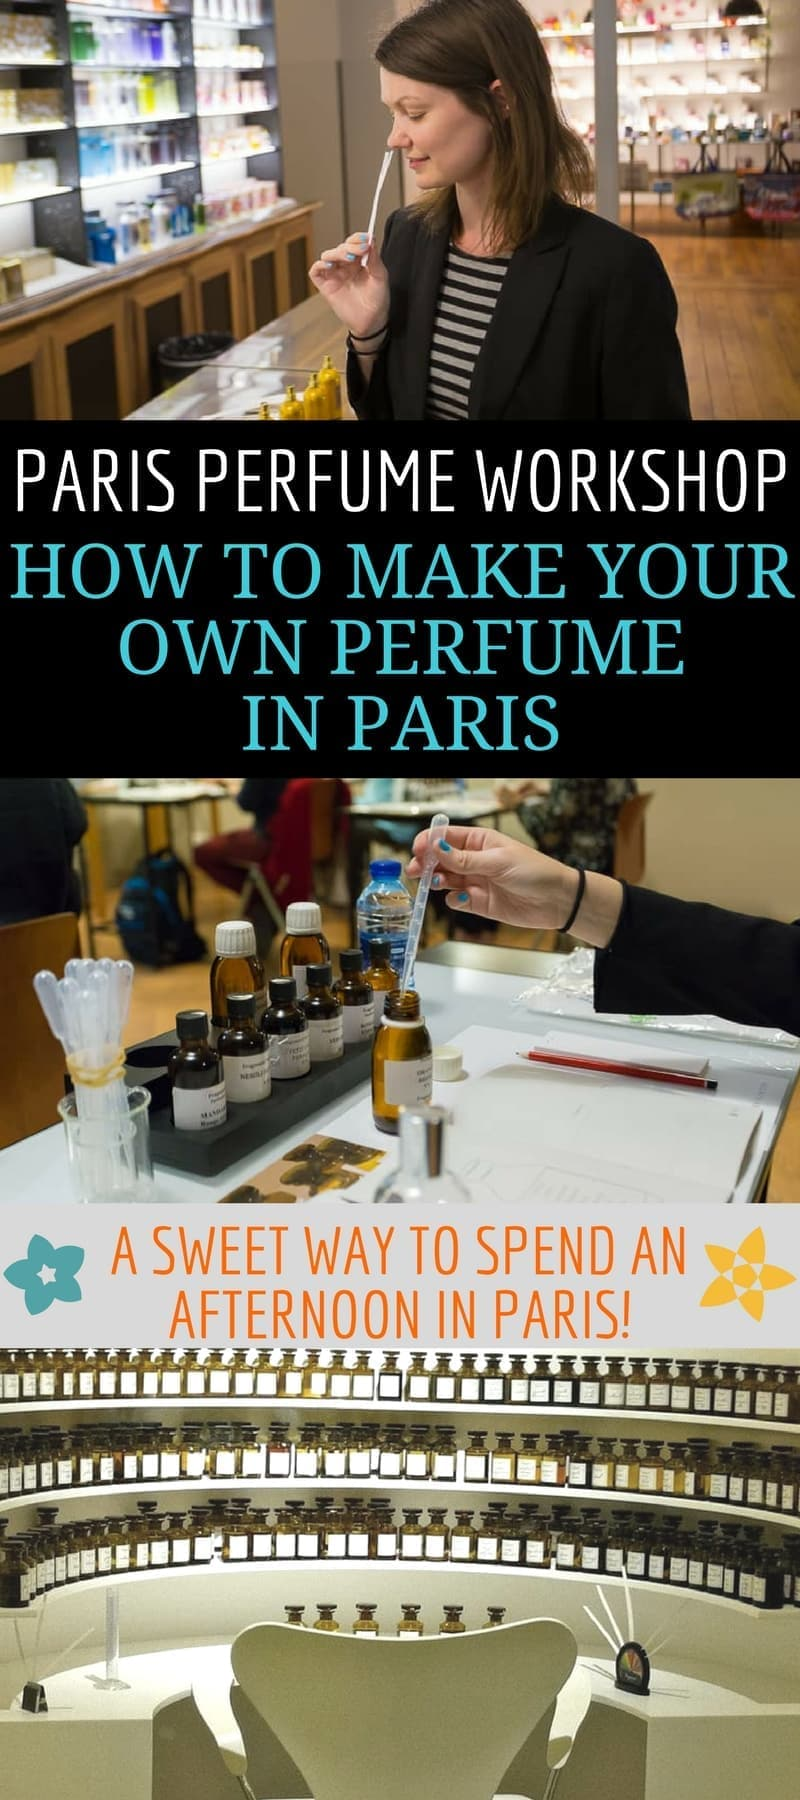 A guide to Paris perfume workshops. Want to make your own custom perfume in Paris France? We'll tell you about Paris perfume workshops, how you can book one, and share our own experiences at the Fragonard Perfume Workshop in Paris. You can also visit the perfume museum in Paris for free! #Paris #perfume #perfumeworkshop #Fragonard #perfumemuseum #Frenchperfume